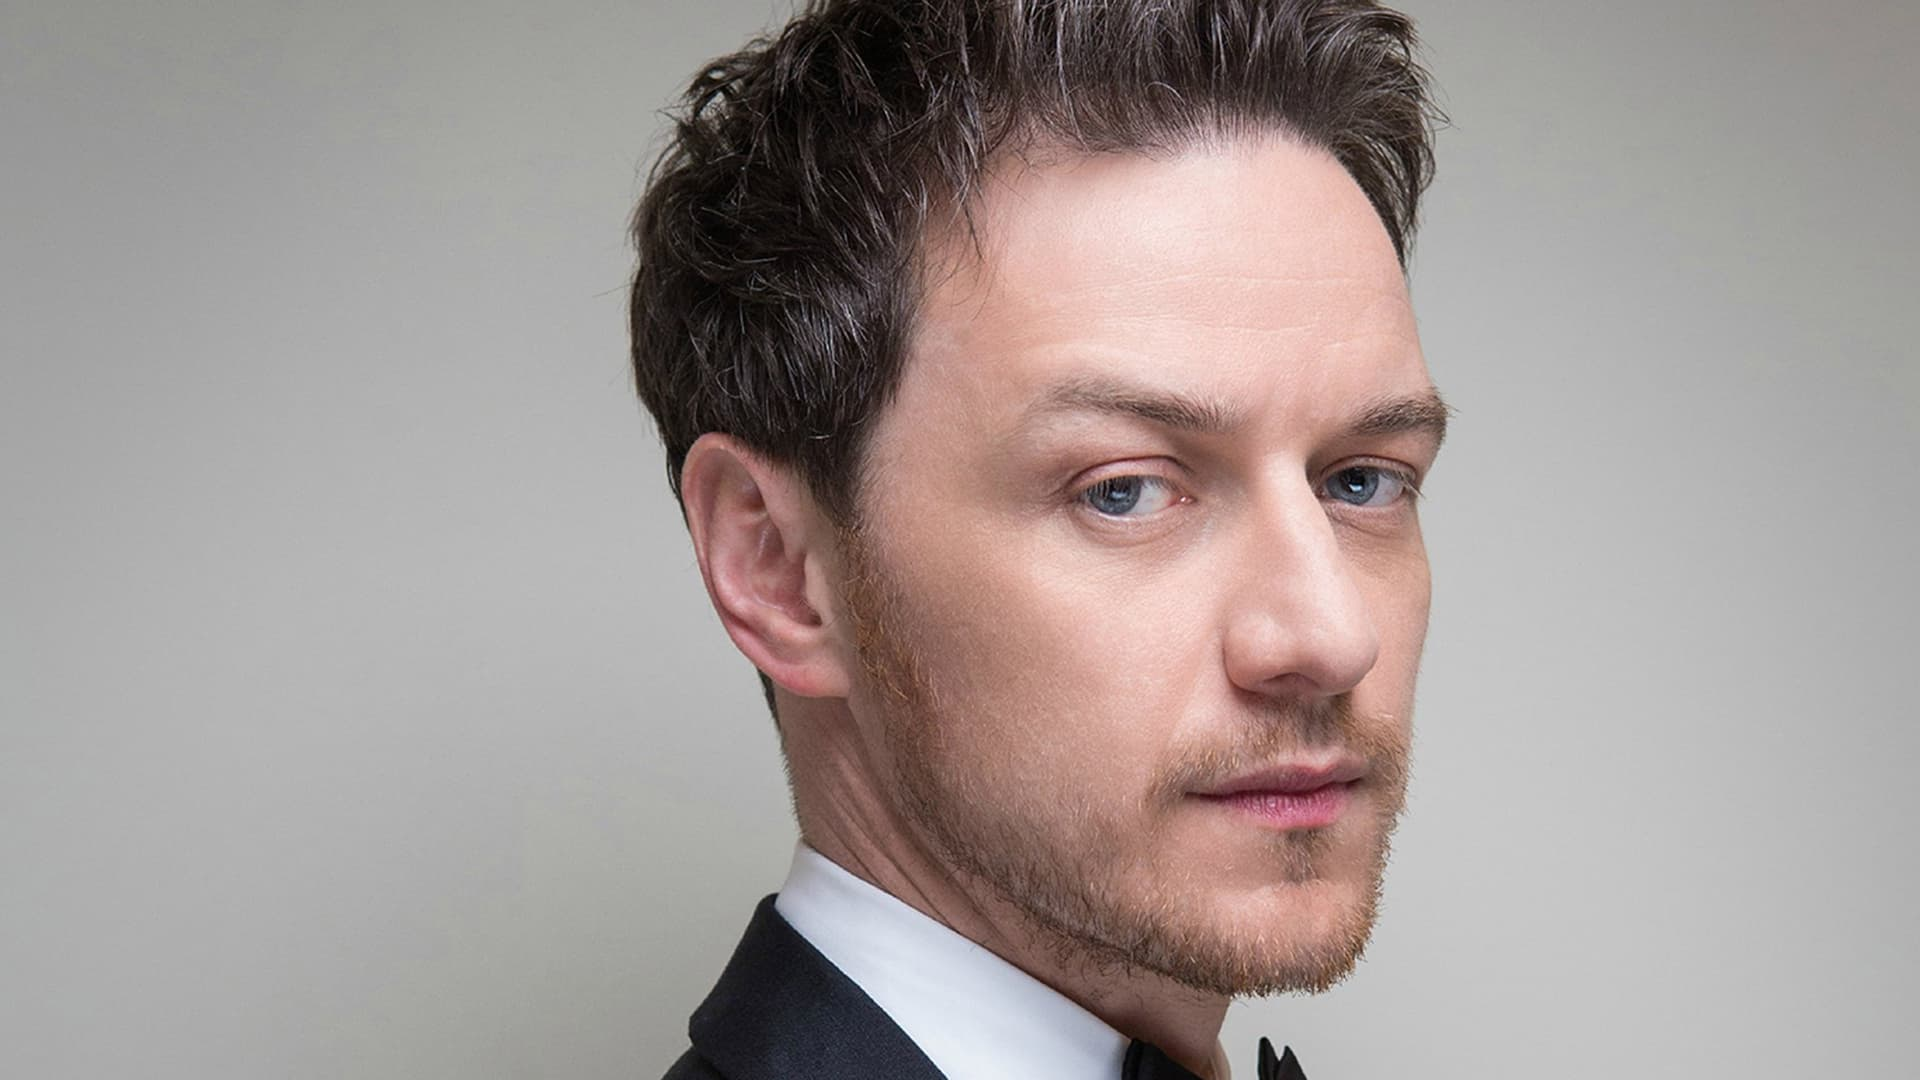 14+ James McAvoy wallpapers HD High Quality Download Ryan Gosling